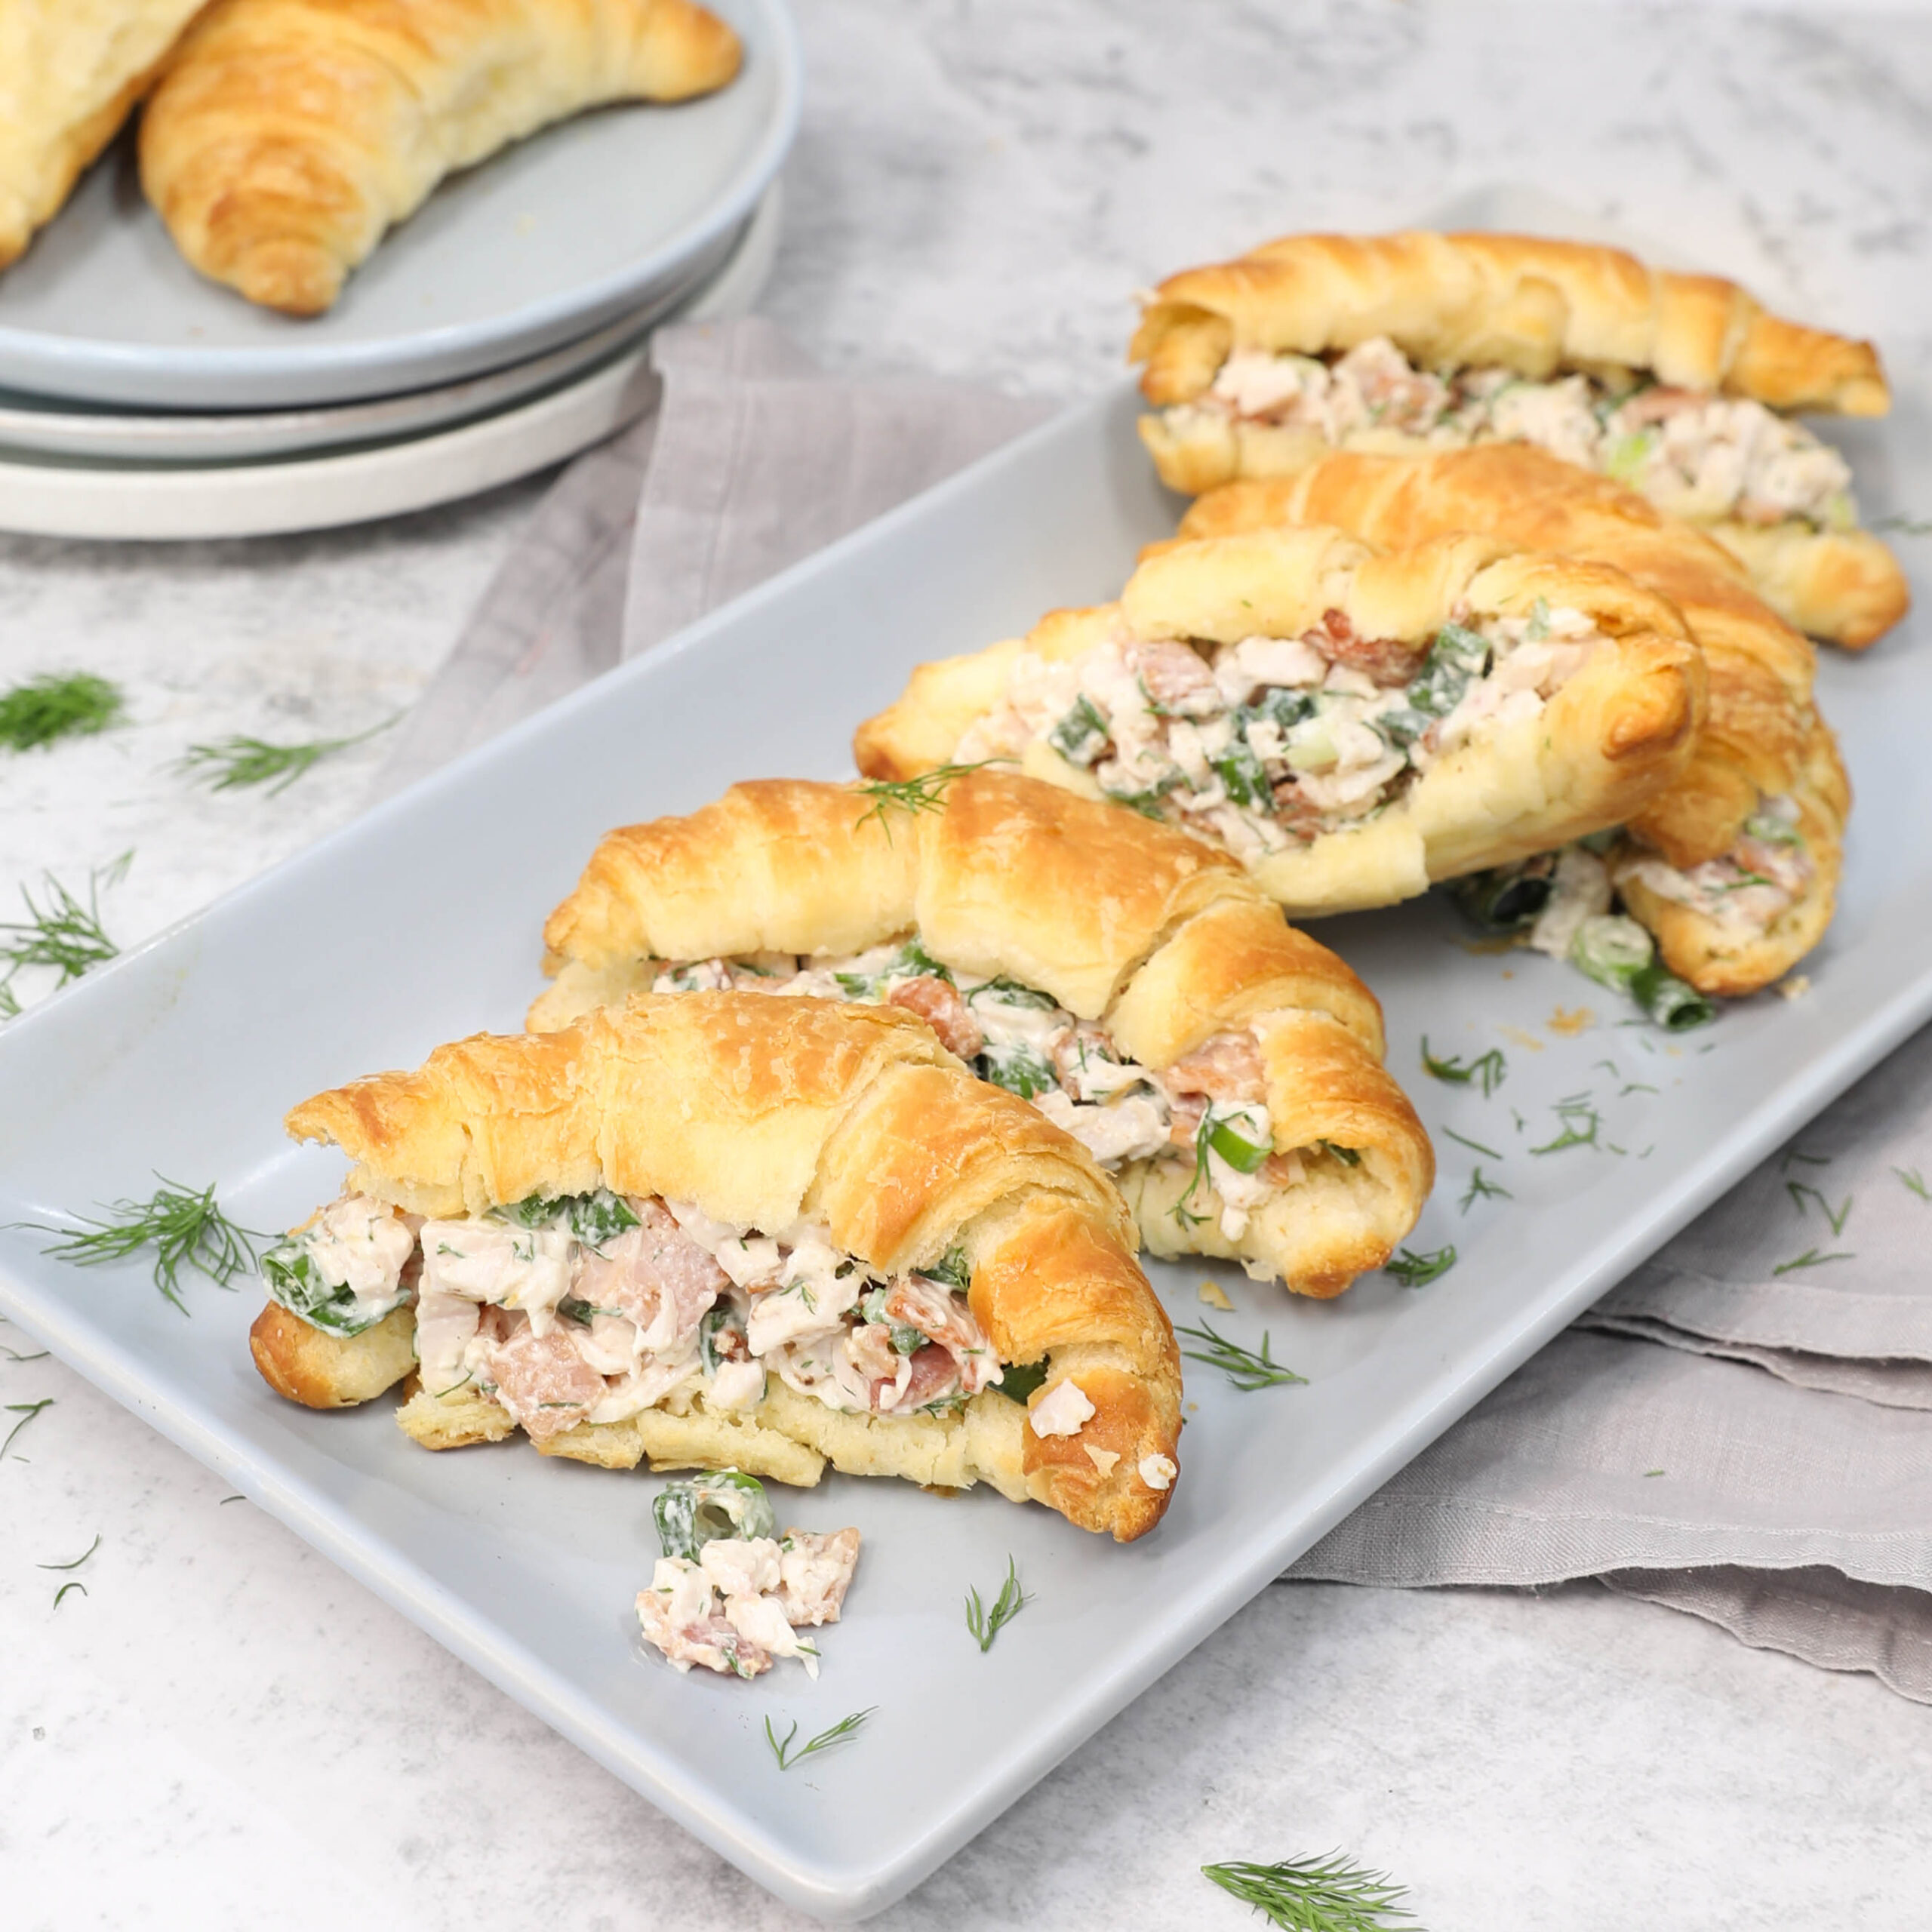 Bacon Chicken and Cream Cheese Croissants